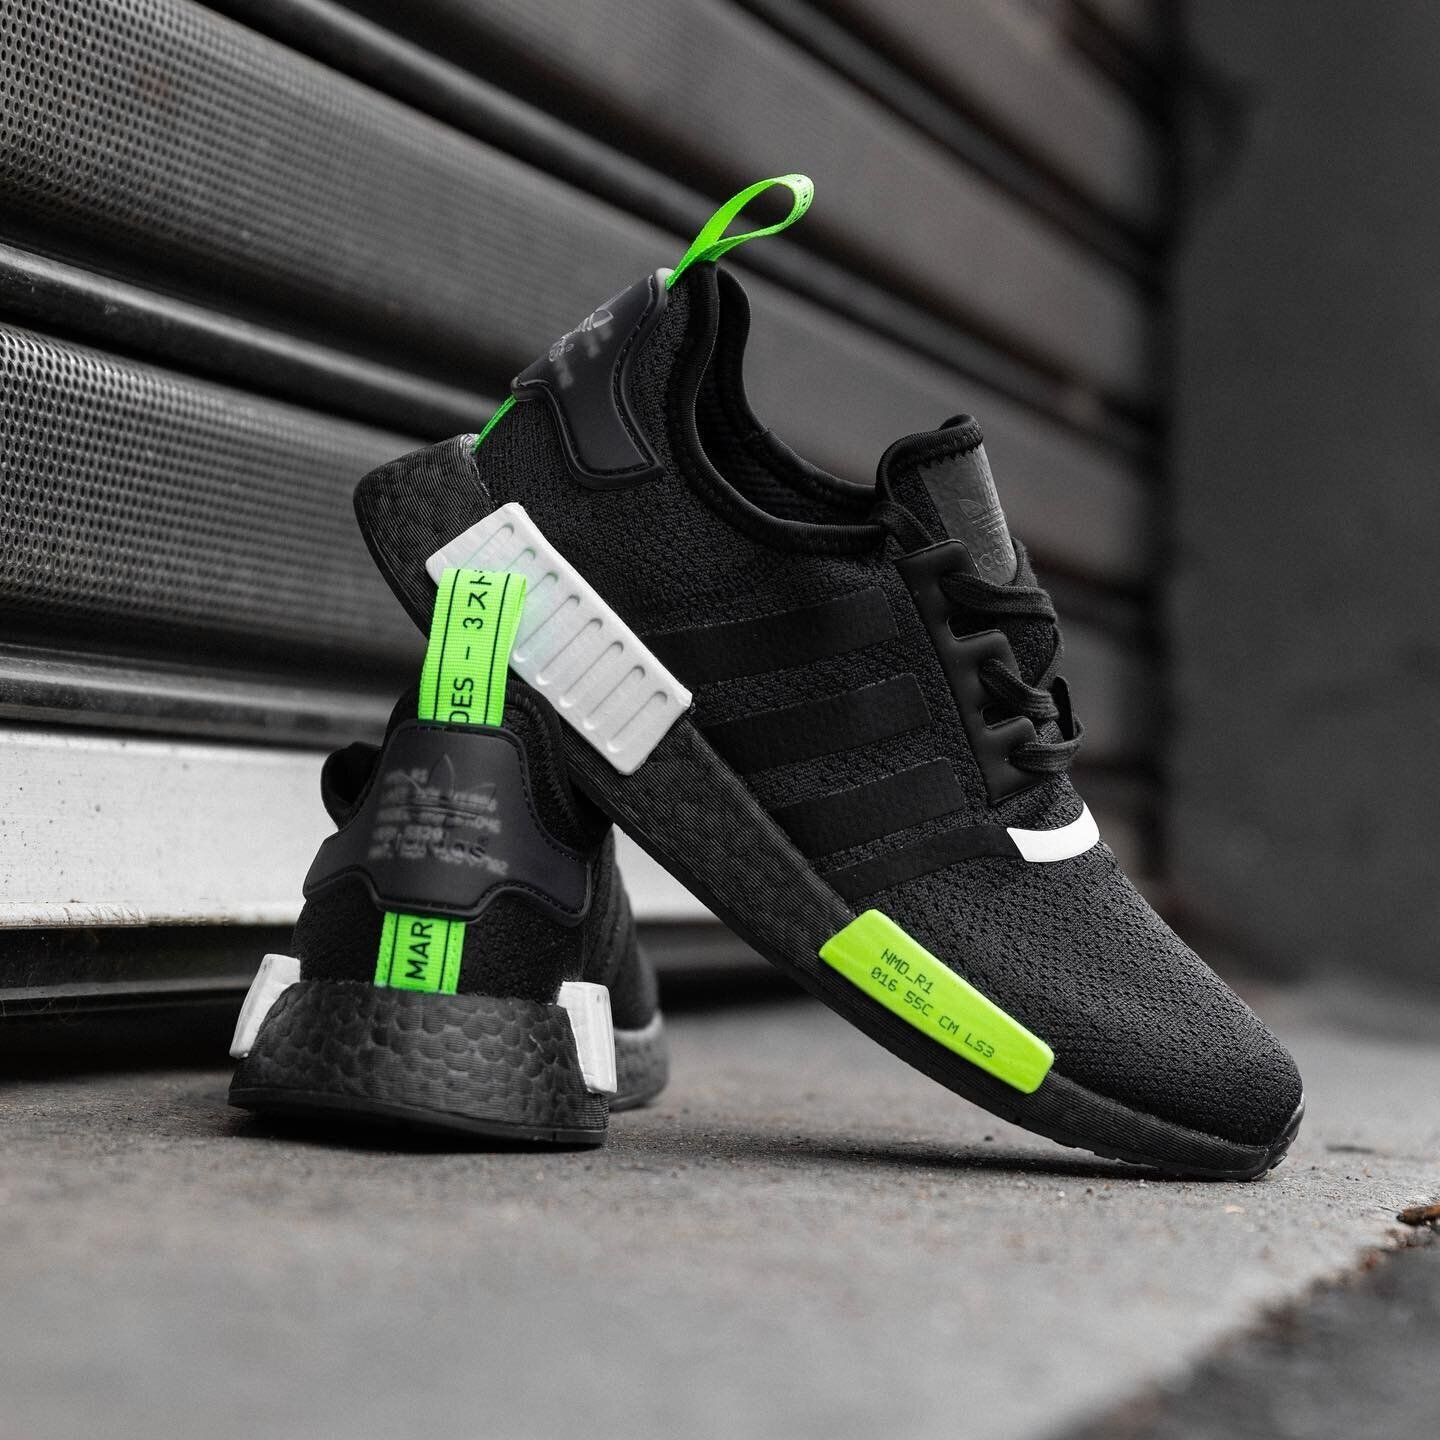 The Adidas Nmd R1 Black Green Is On Sale For 66 Kicks Under Cost